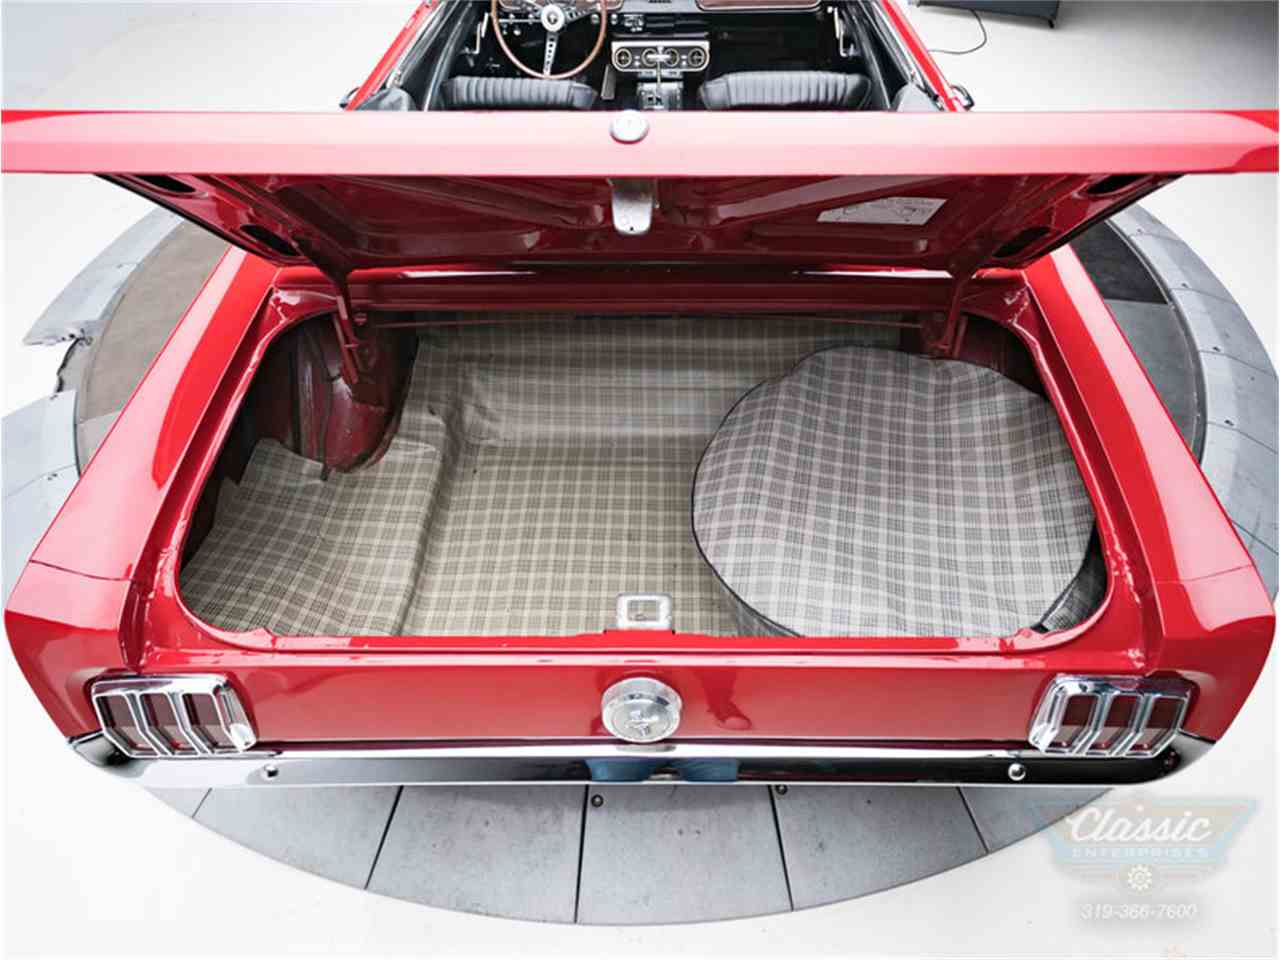 Large Picture of '66 Mustang located in Cedar Rapids Iowa - $36,950.00 - MA5N